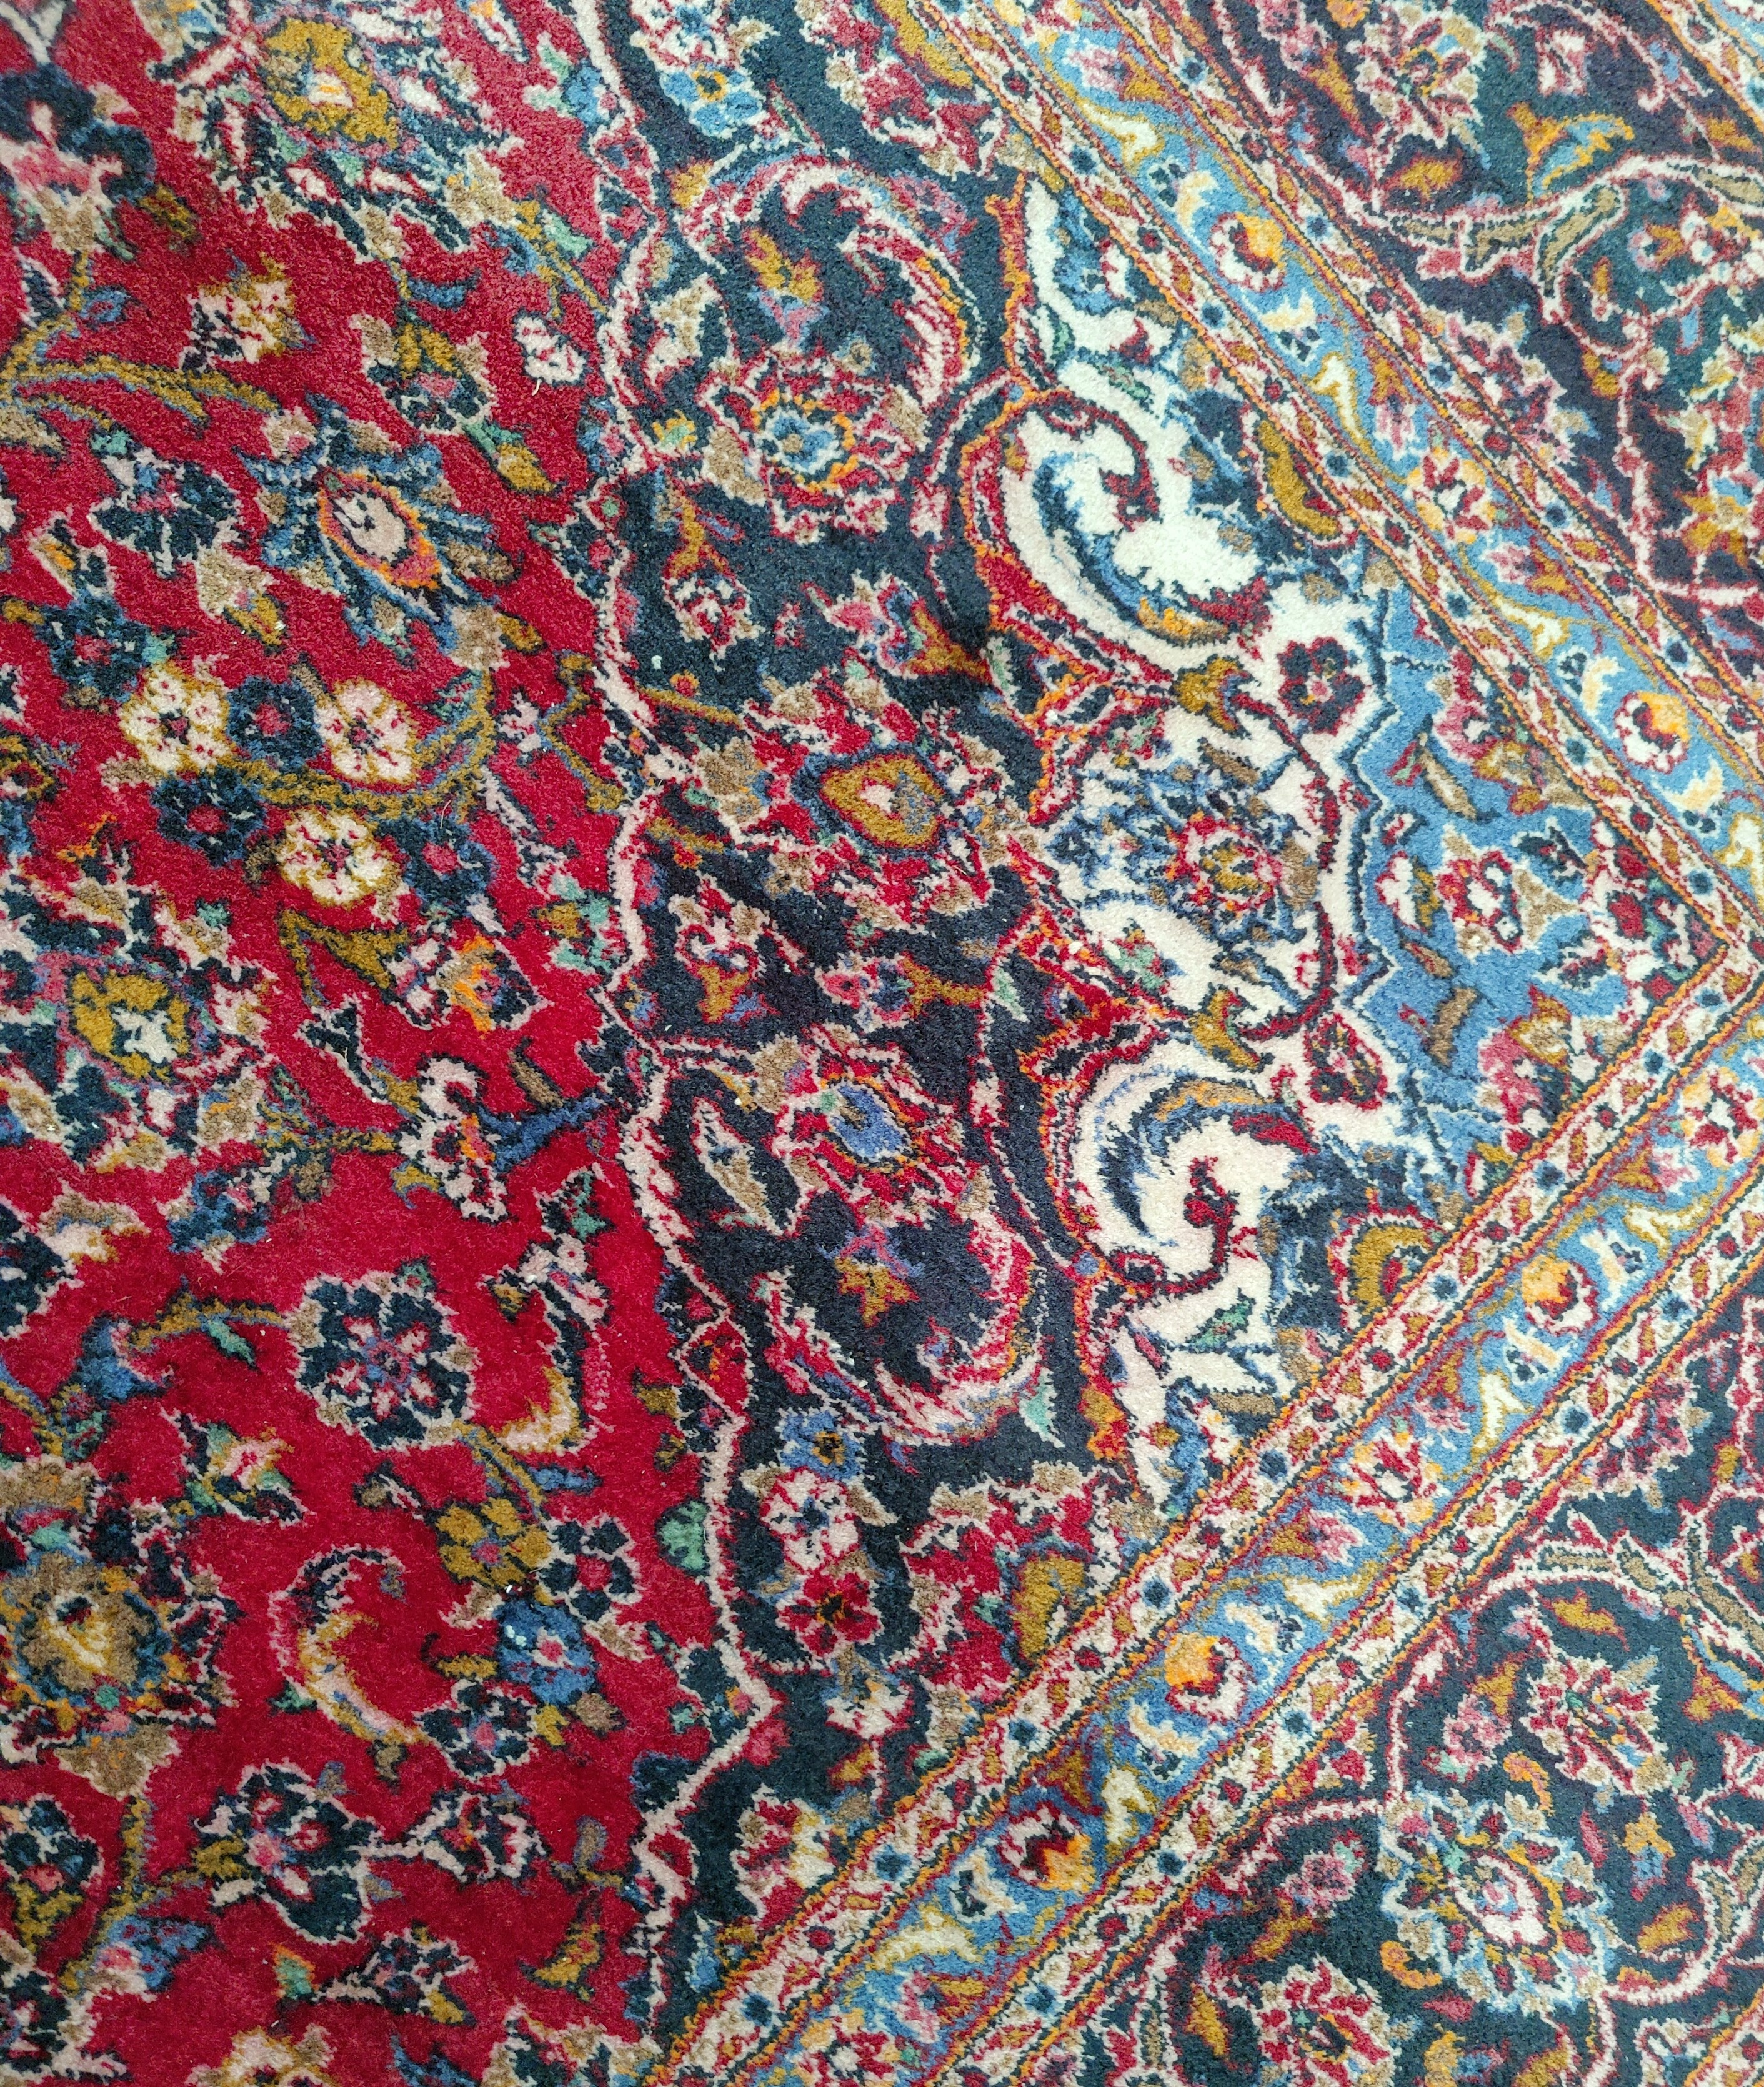 A mid 20th century Turkoman carpet, floral motifs on red ground multi-coloured, 9.5' x 12.5' approx - Image 4 of 4